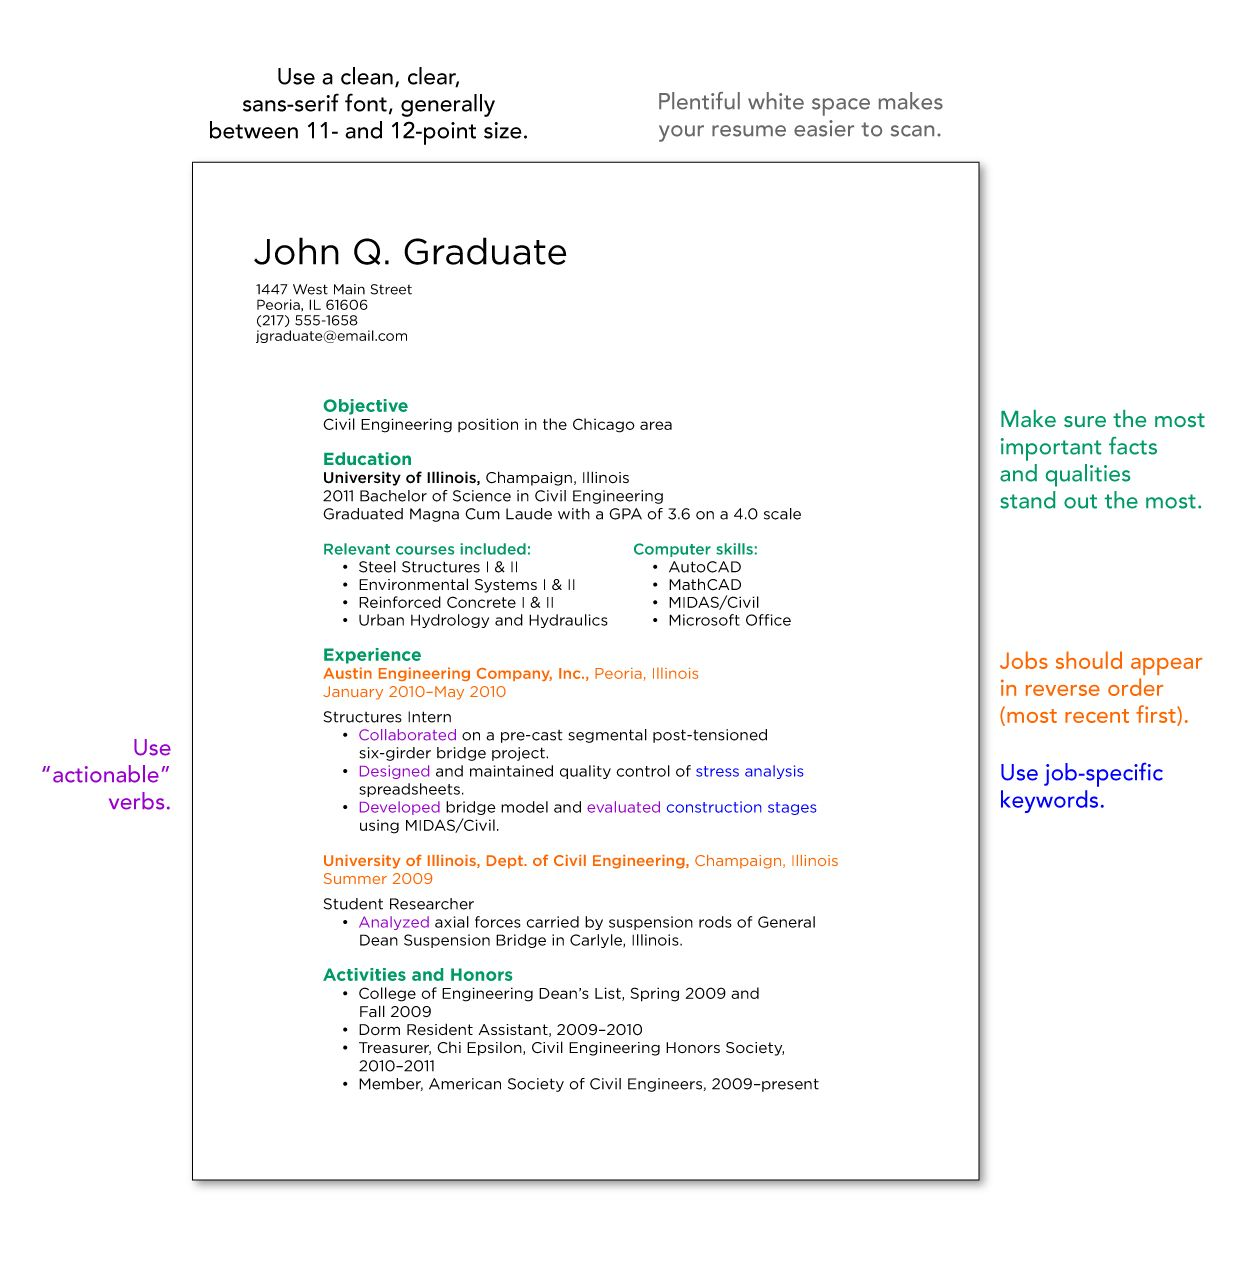 Indesign Resume Layouts httpwwwresumecareerinfoindesign